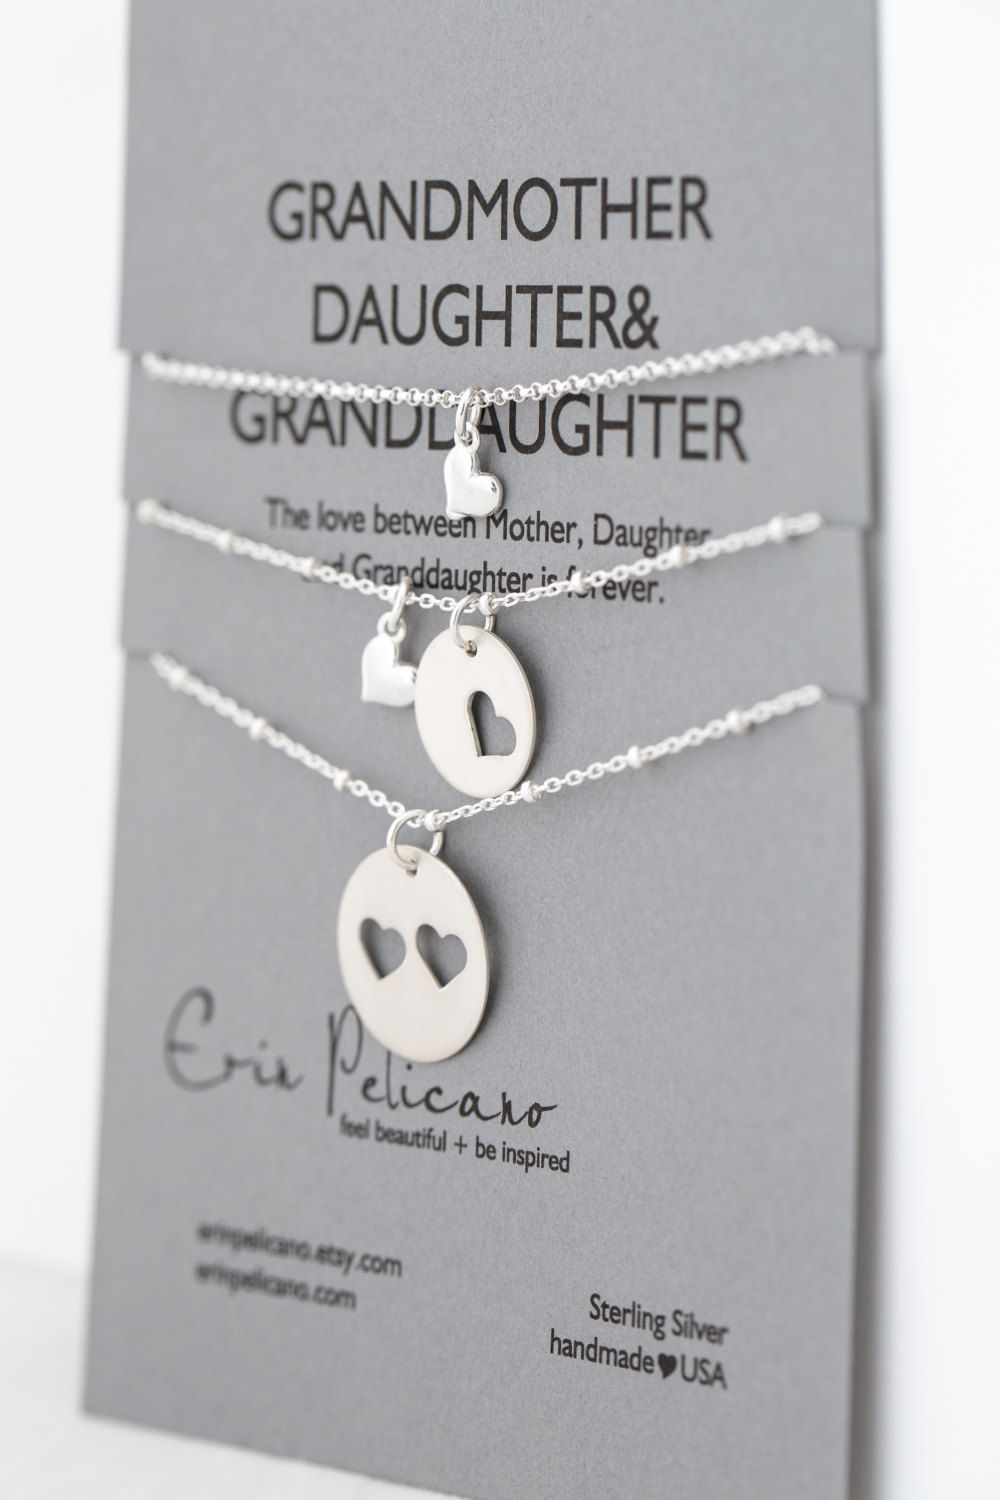 Grandmother Daughter Granddaughter Jewelry Simple Delicate Sterling Silver By Erinpelicano On Etsy